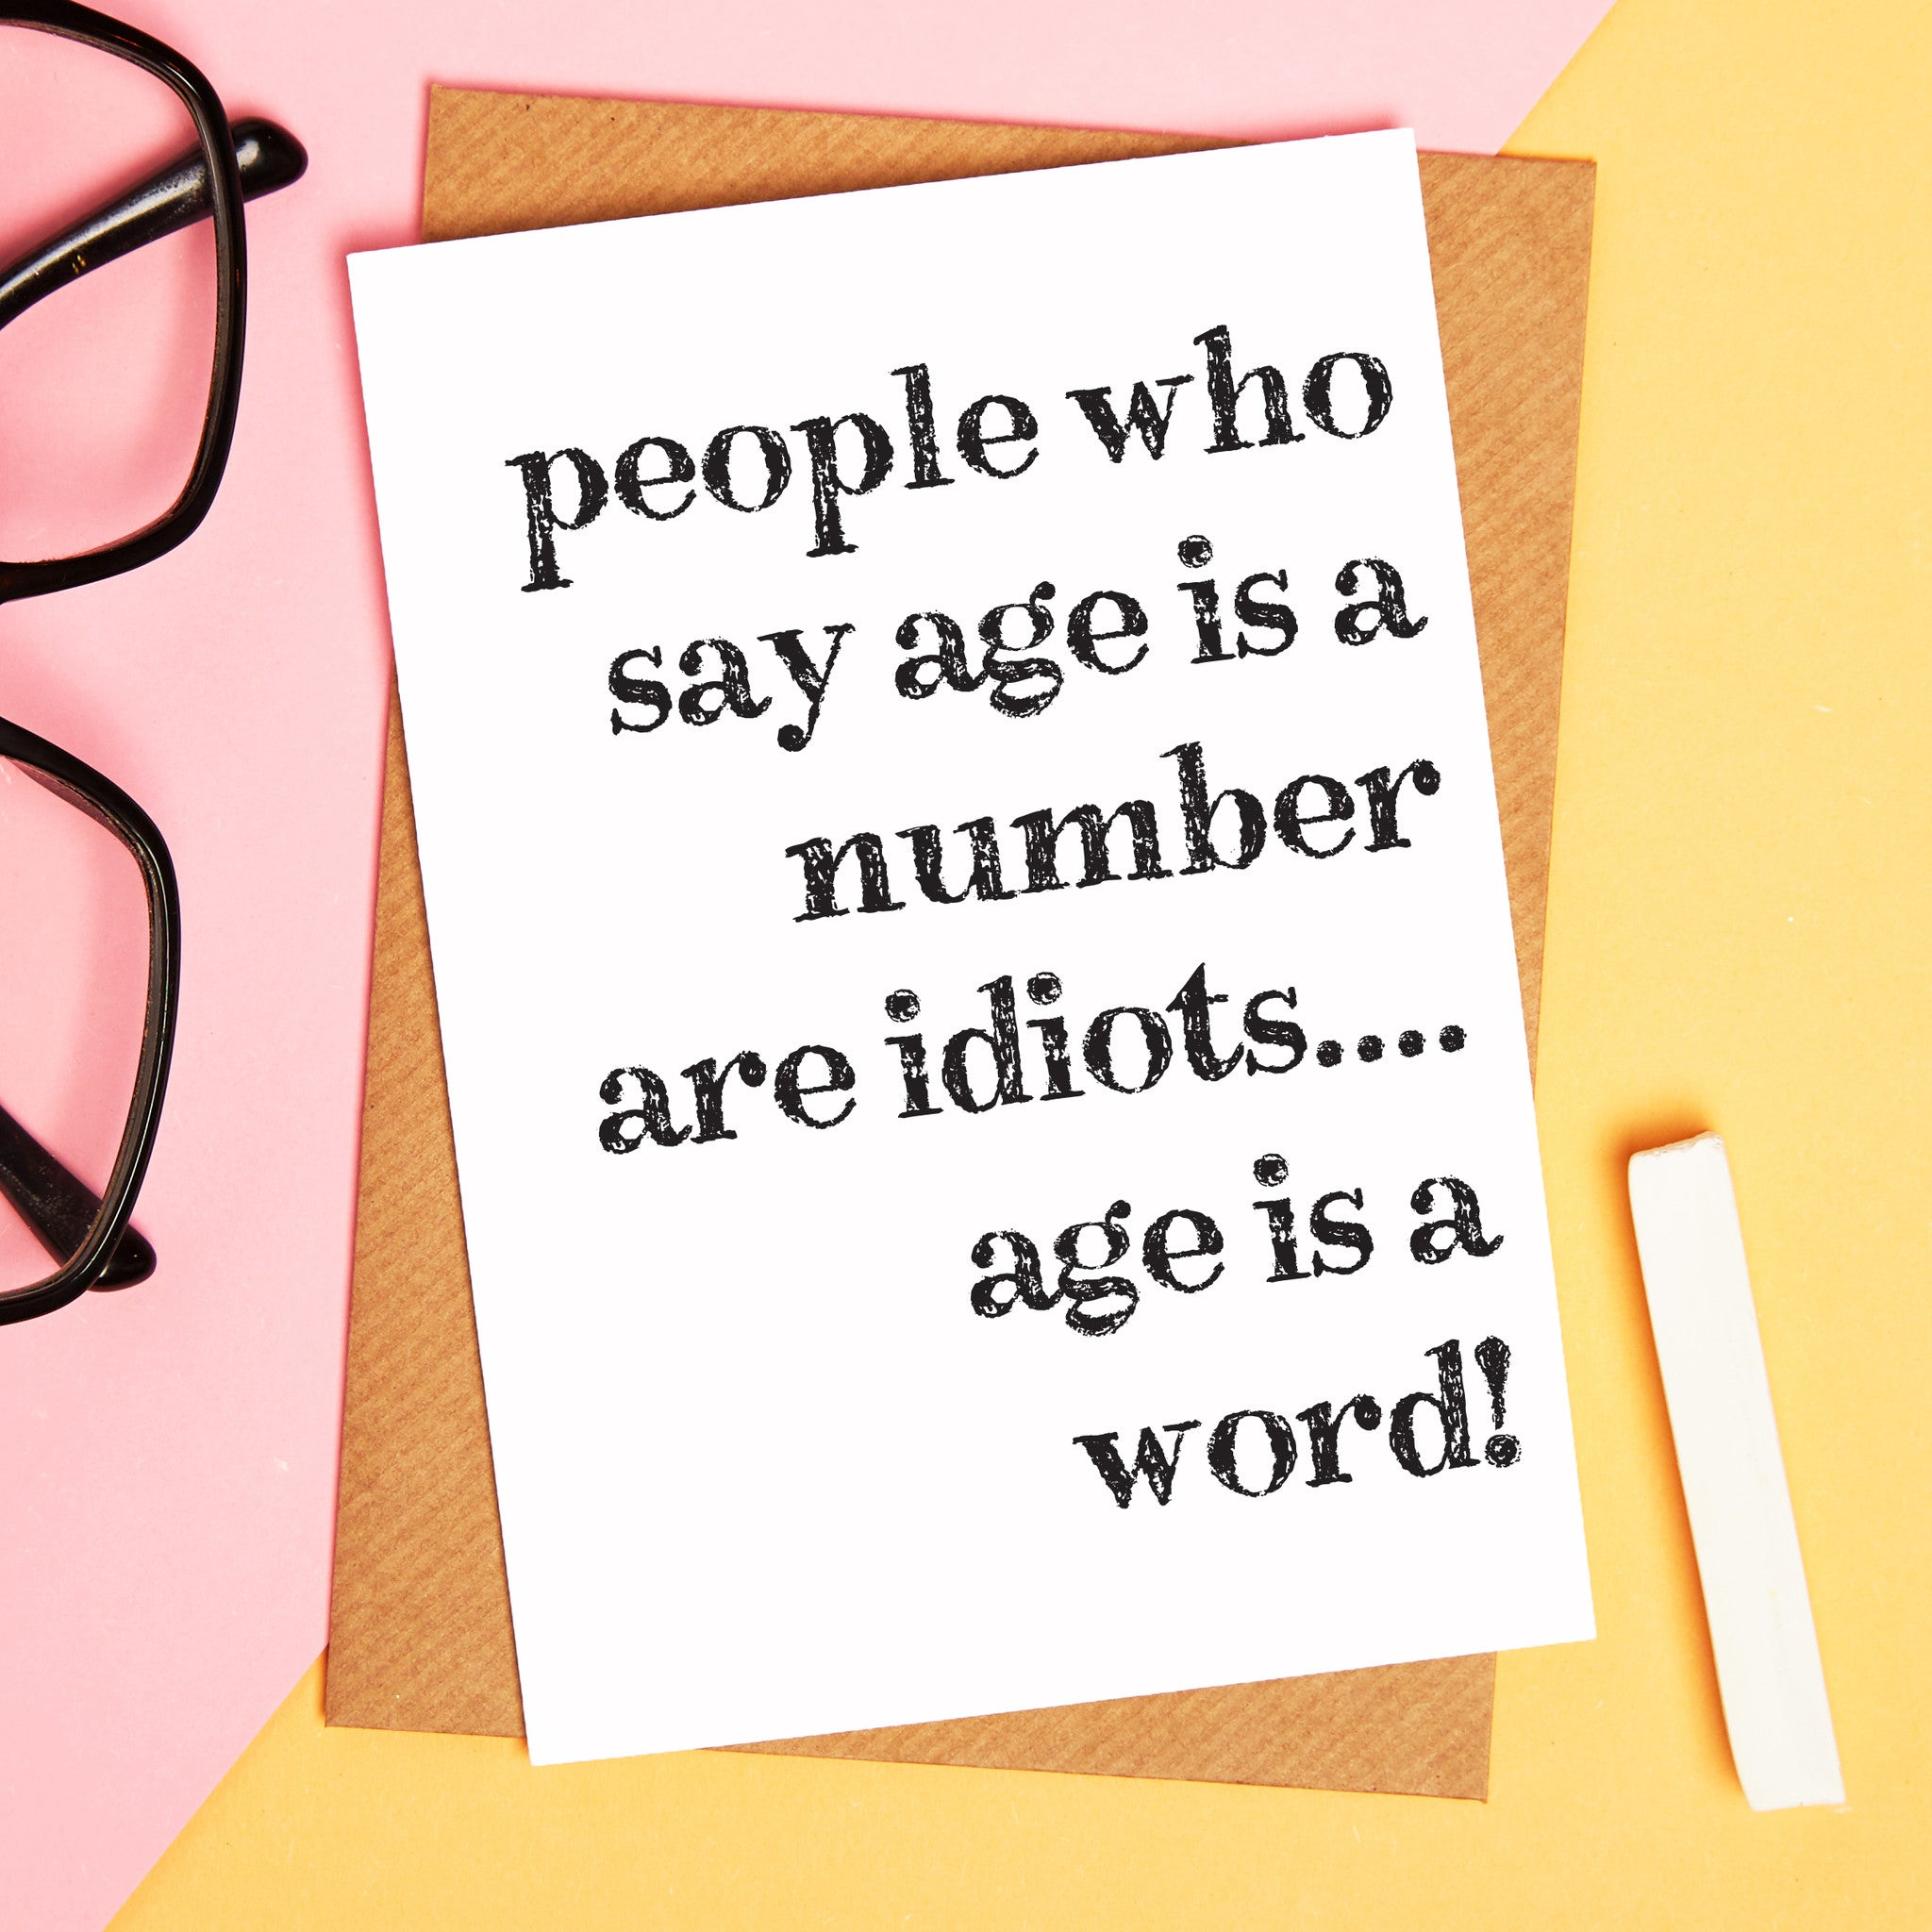 Greetings cards coconutgrass funny birthday card age is a number funny card bookmarktalkfo Choice Image